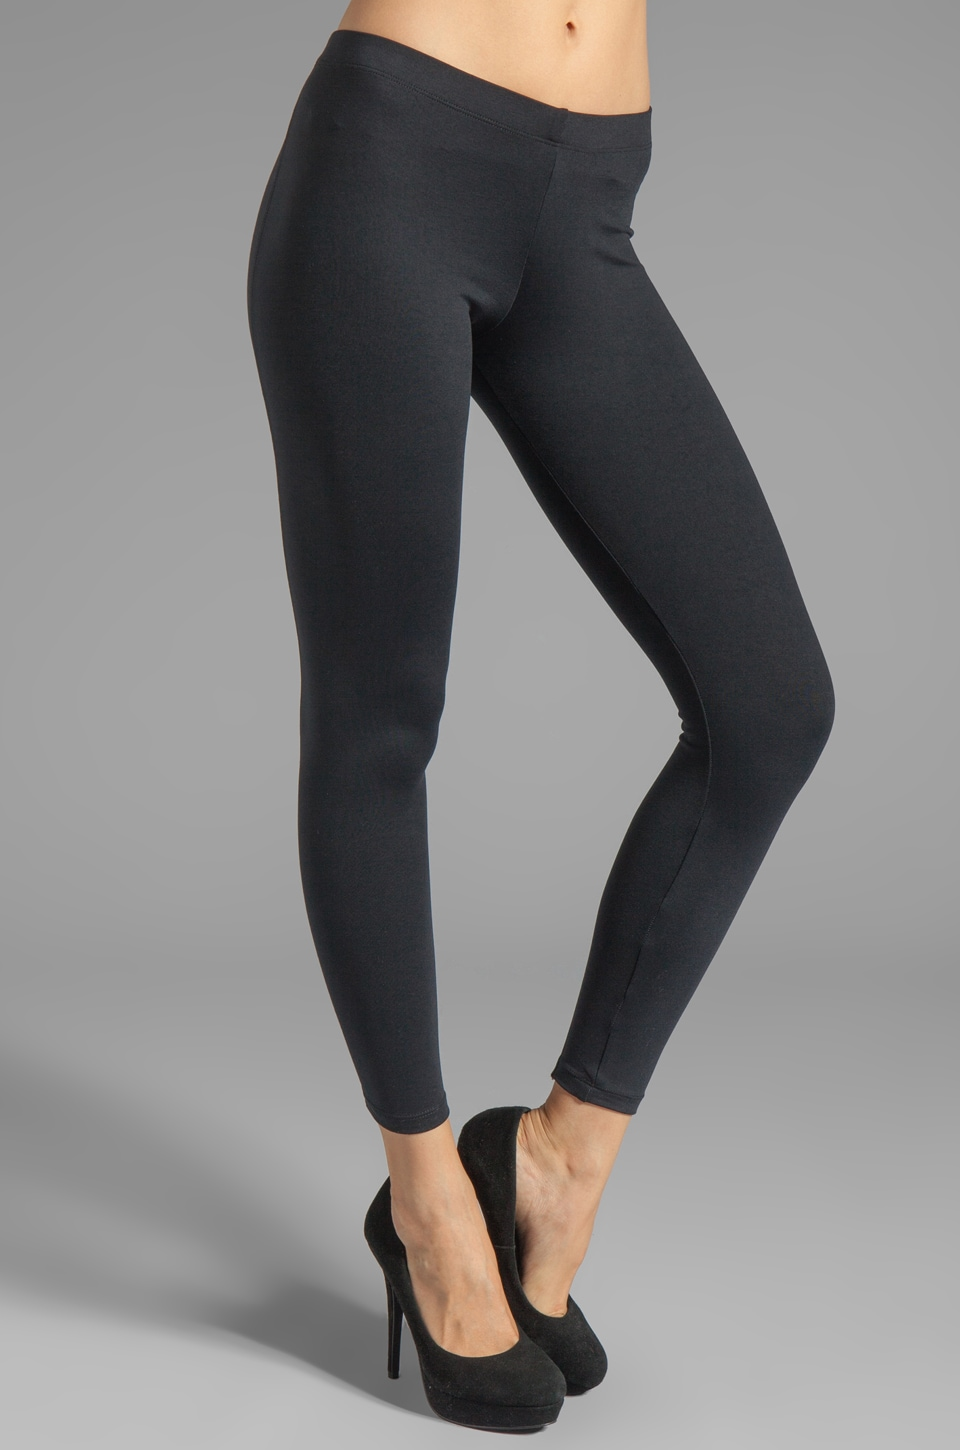 David Lerner 9' Back Zipper Legging in Black